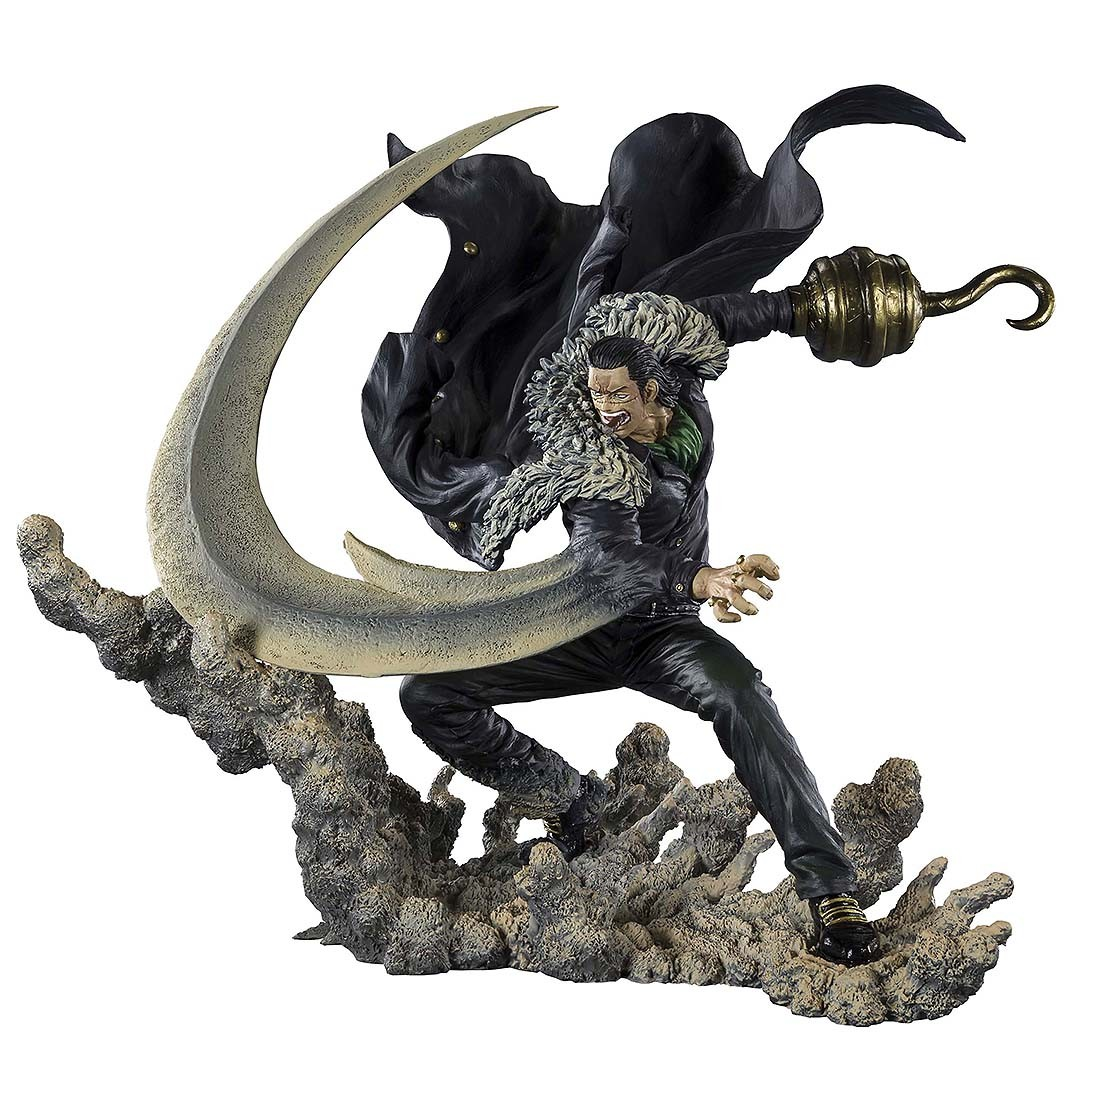 PREORDER - Bandai Figuarts Zero One Piece Extra Battle Sir Crocodile Paramount War Figure (black)